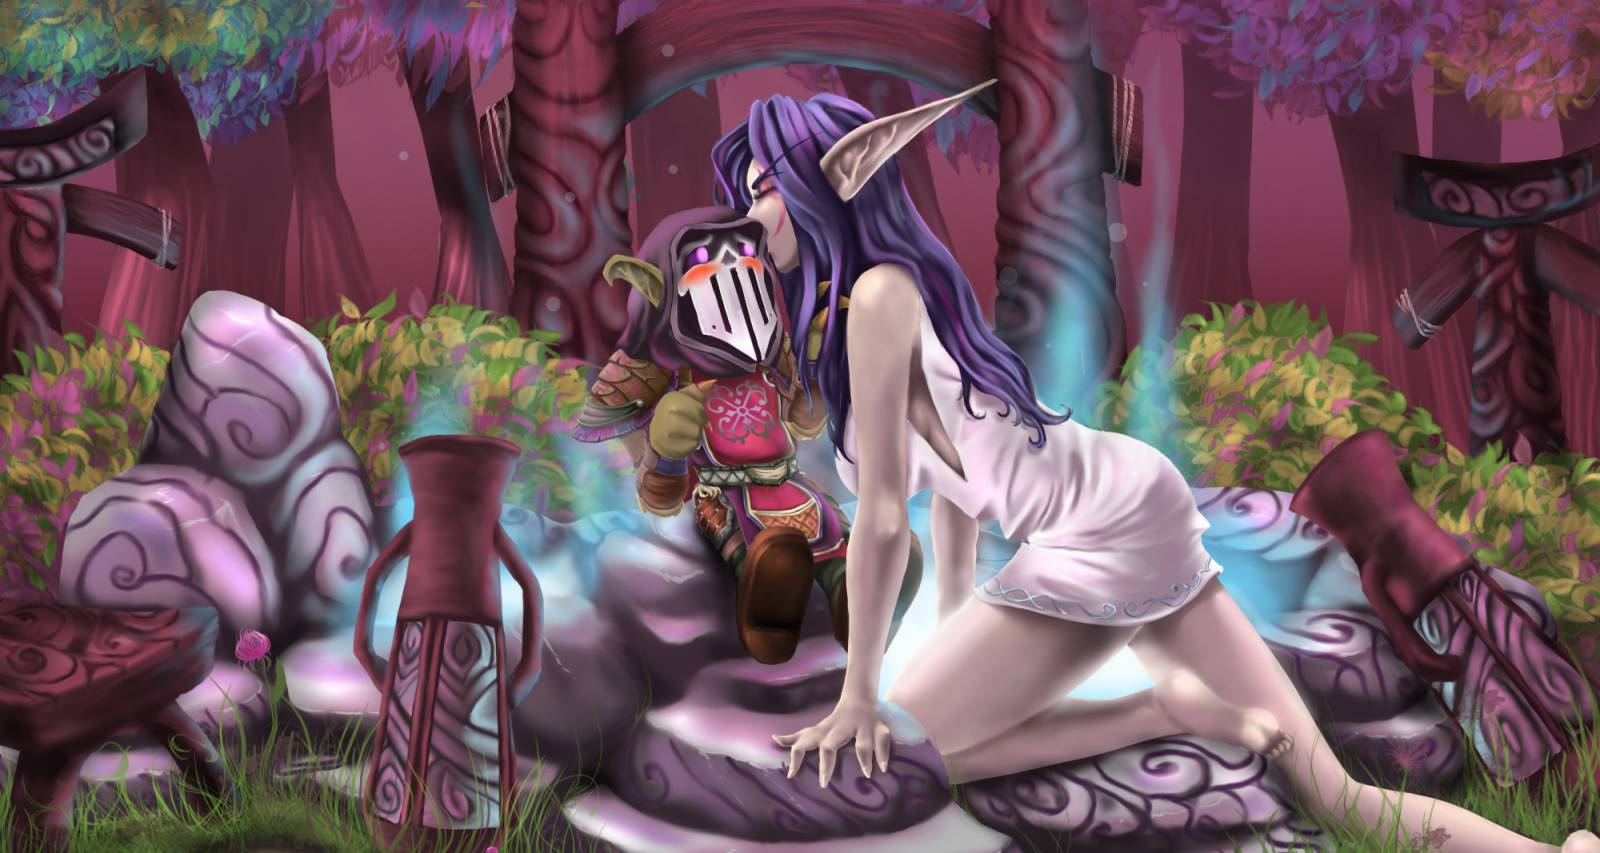 Nightelf futa adult videos